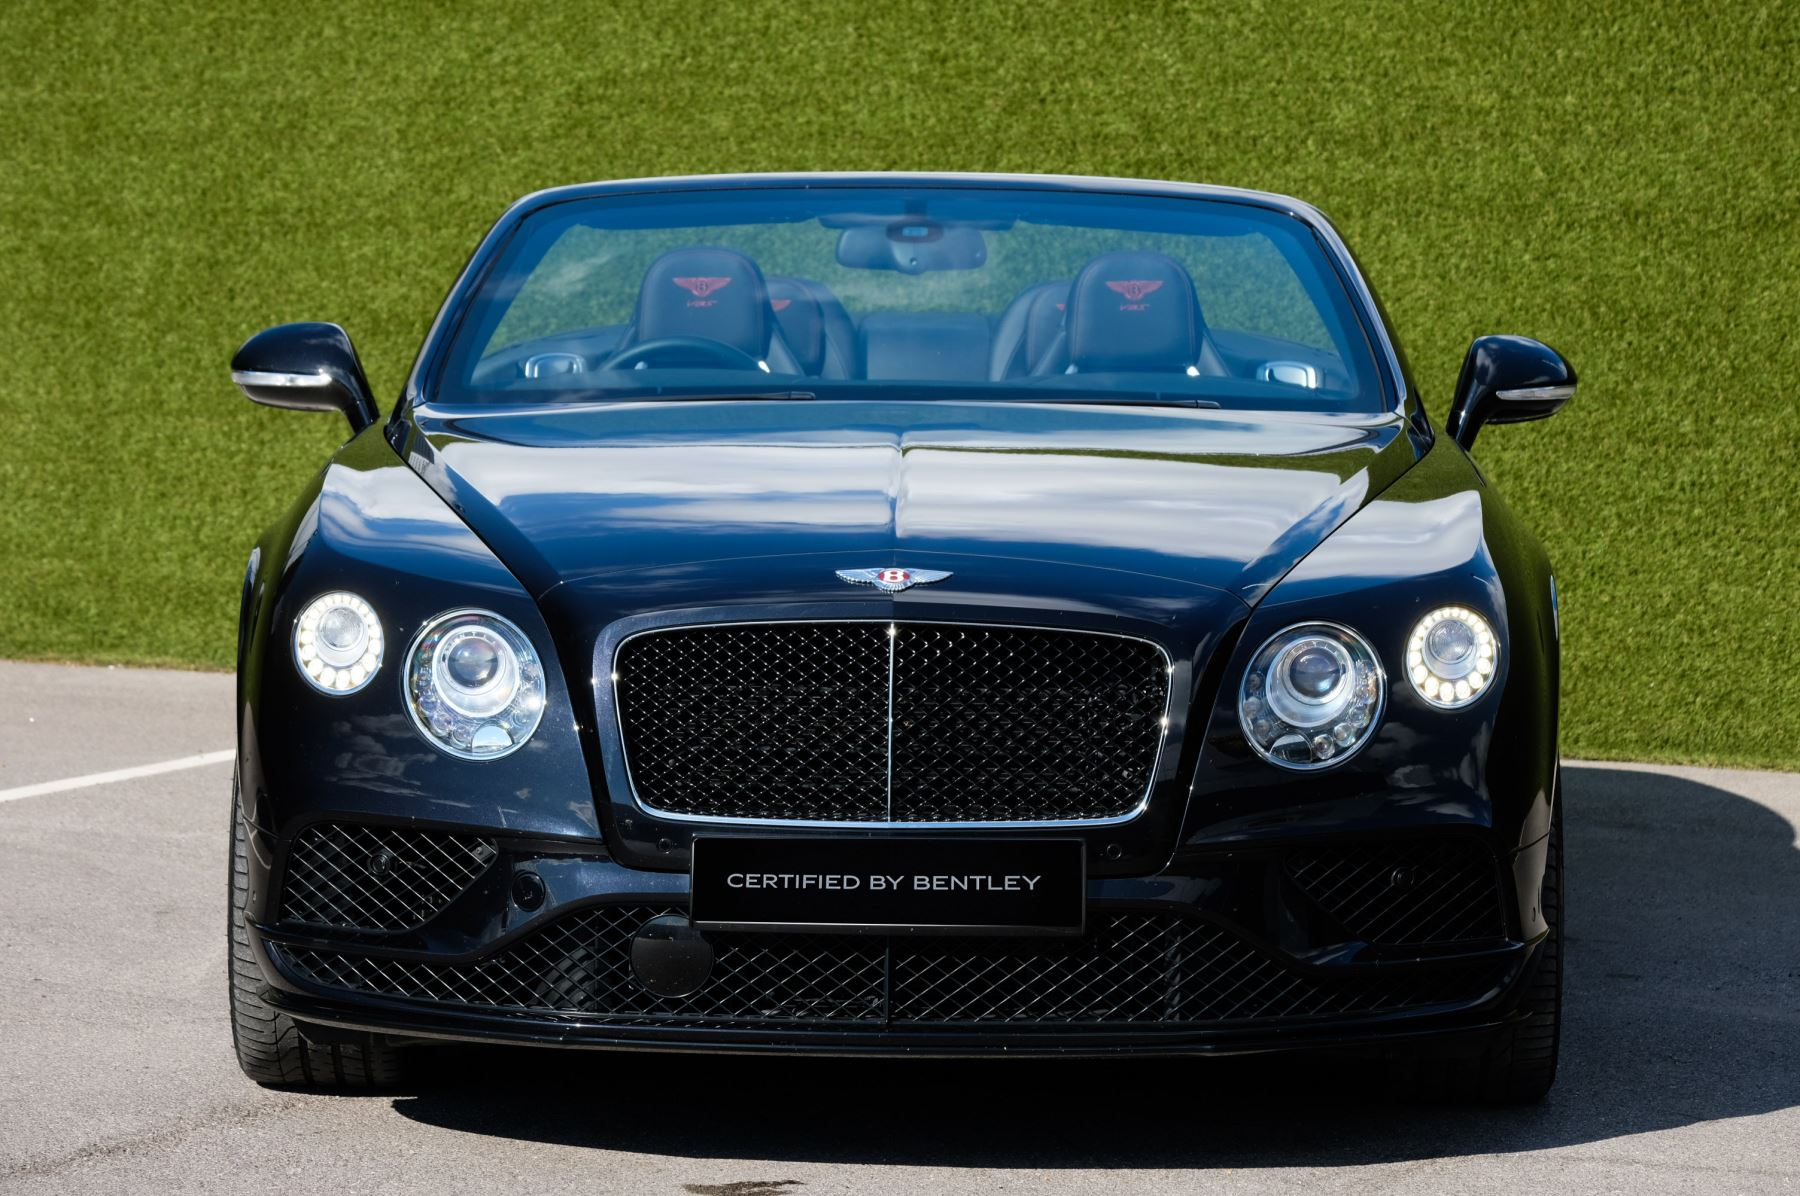 Bentley Continental GTC 4.0 V8 S - Mulliner Driving Spec - Sports Exhaust image 2